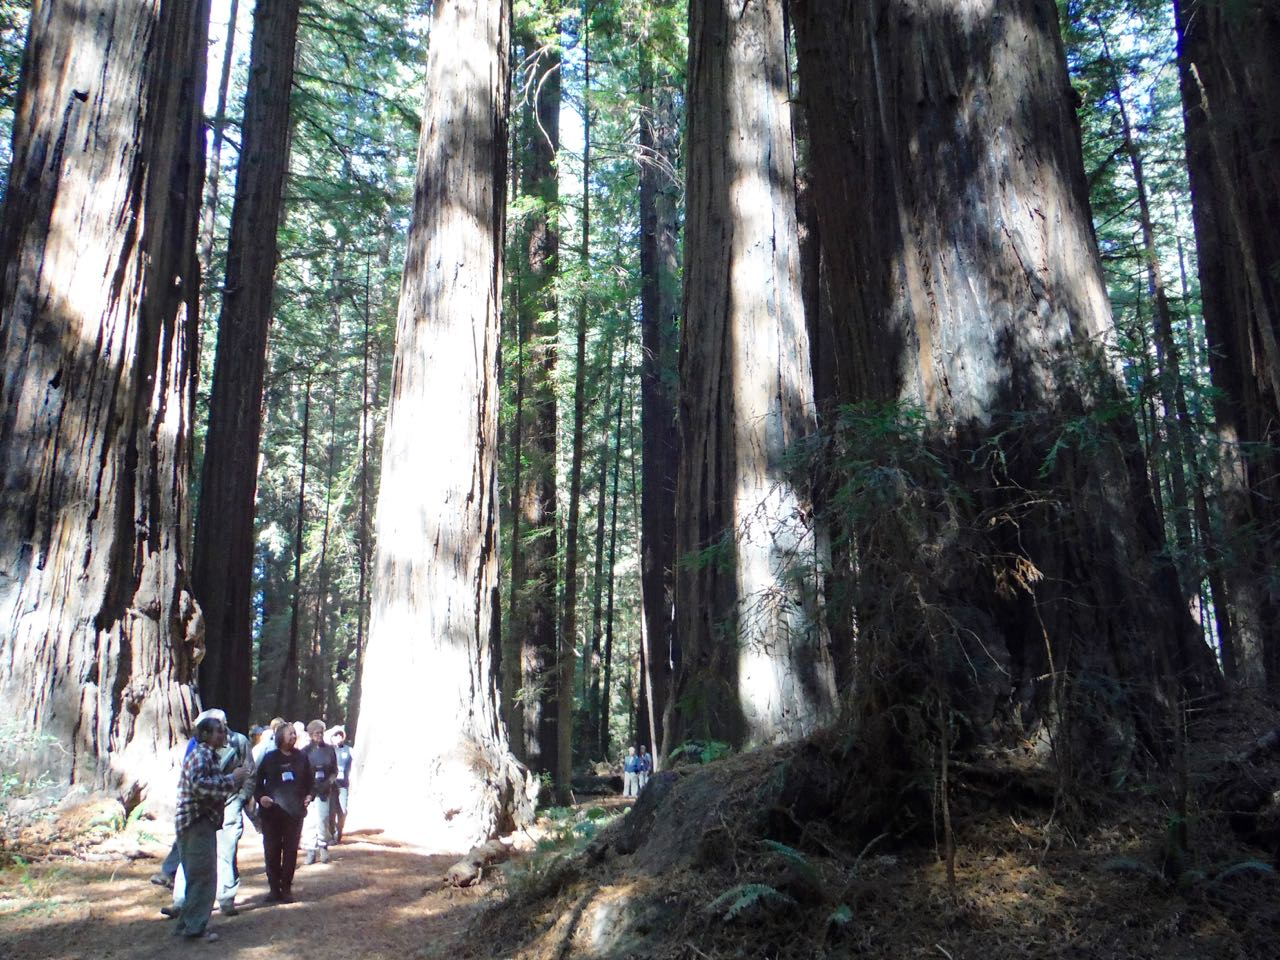 Redwoods 2017 10 08 34 Of 287